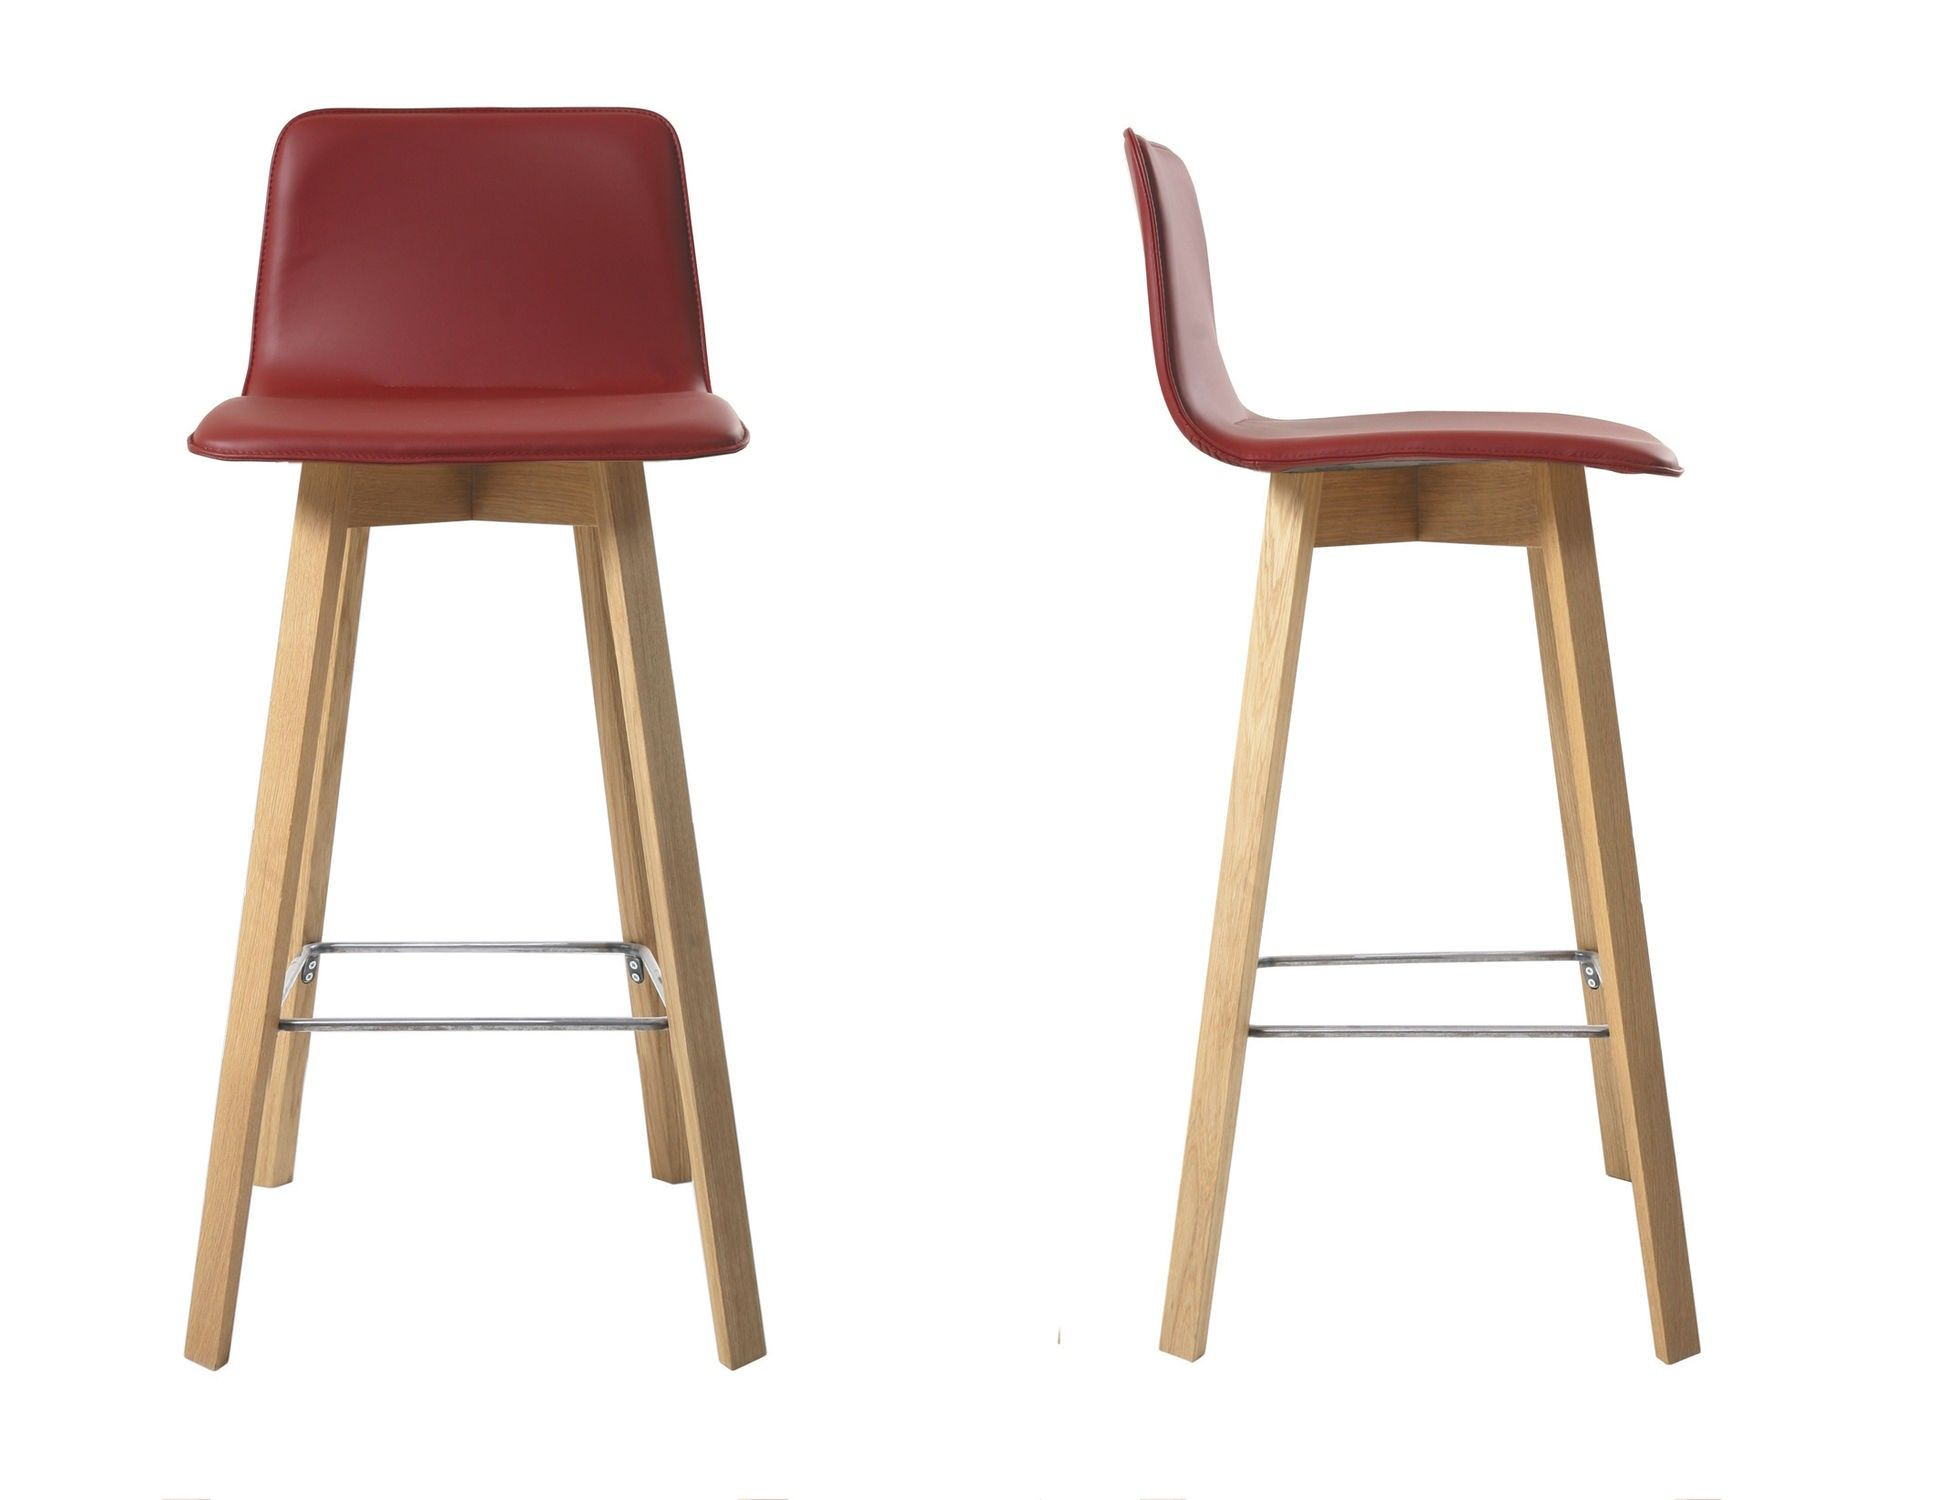 Luxury Bar Stool Luxury Bar Stools Wooden Bar Stools Bar Stools